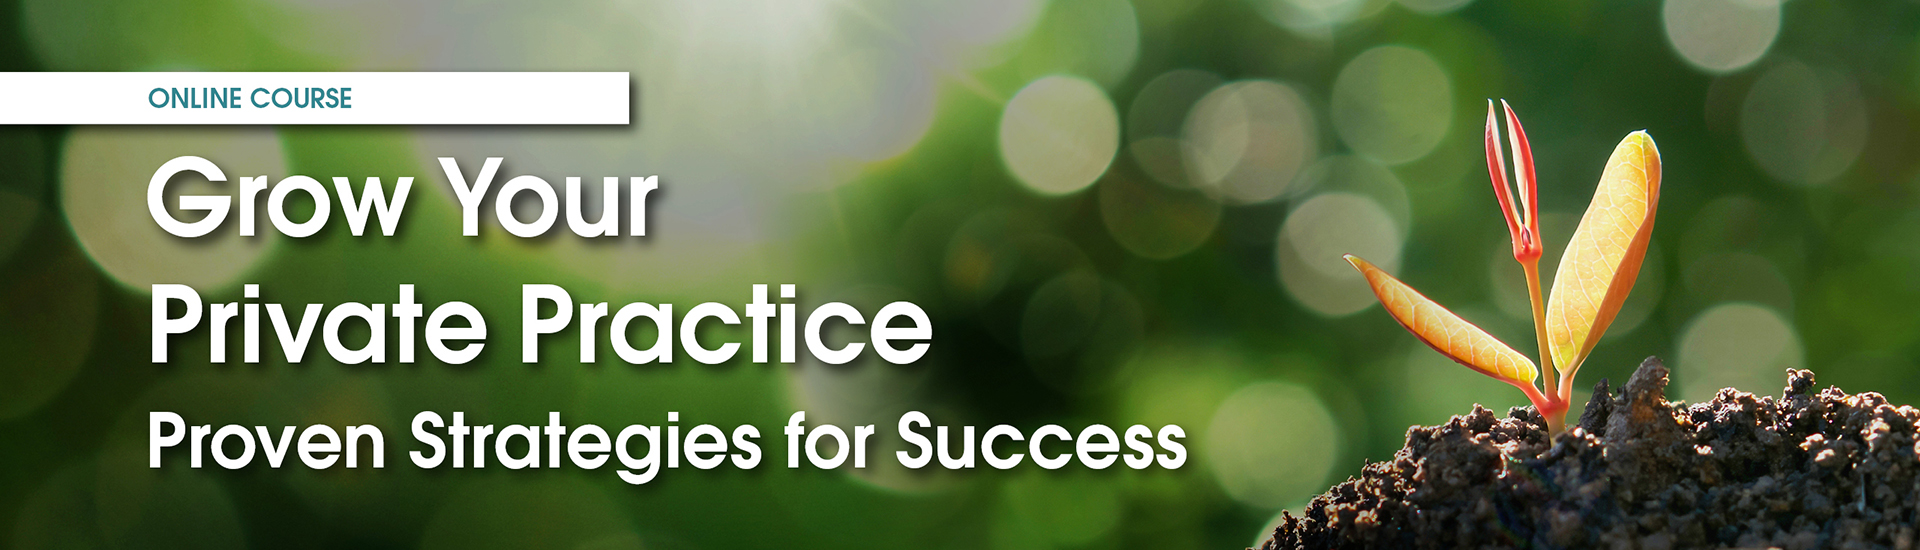 Grow Your Private Practice Online Course